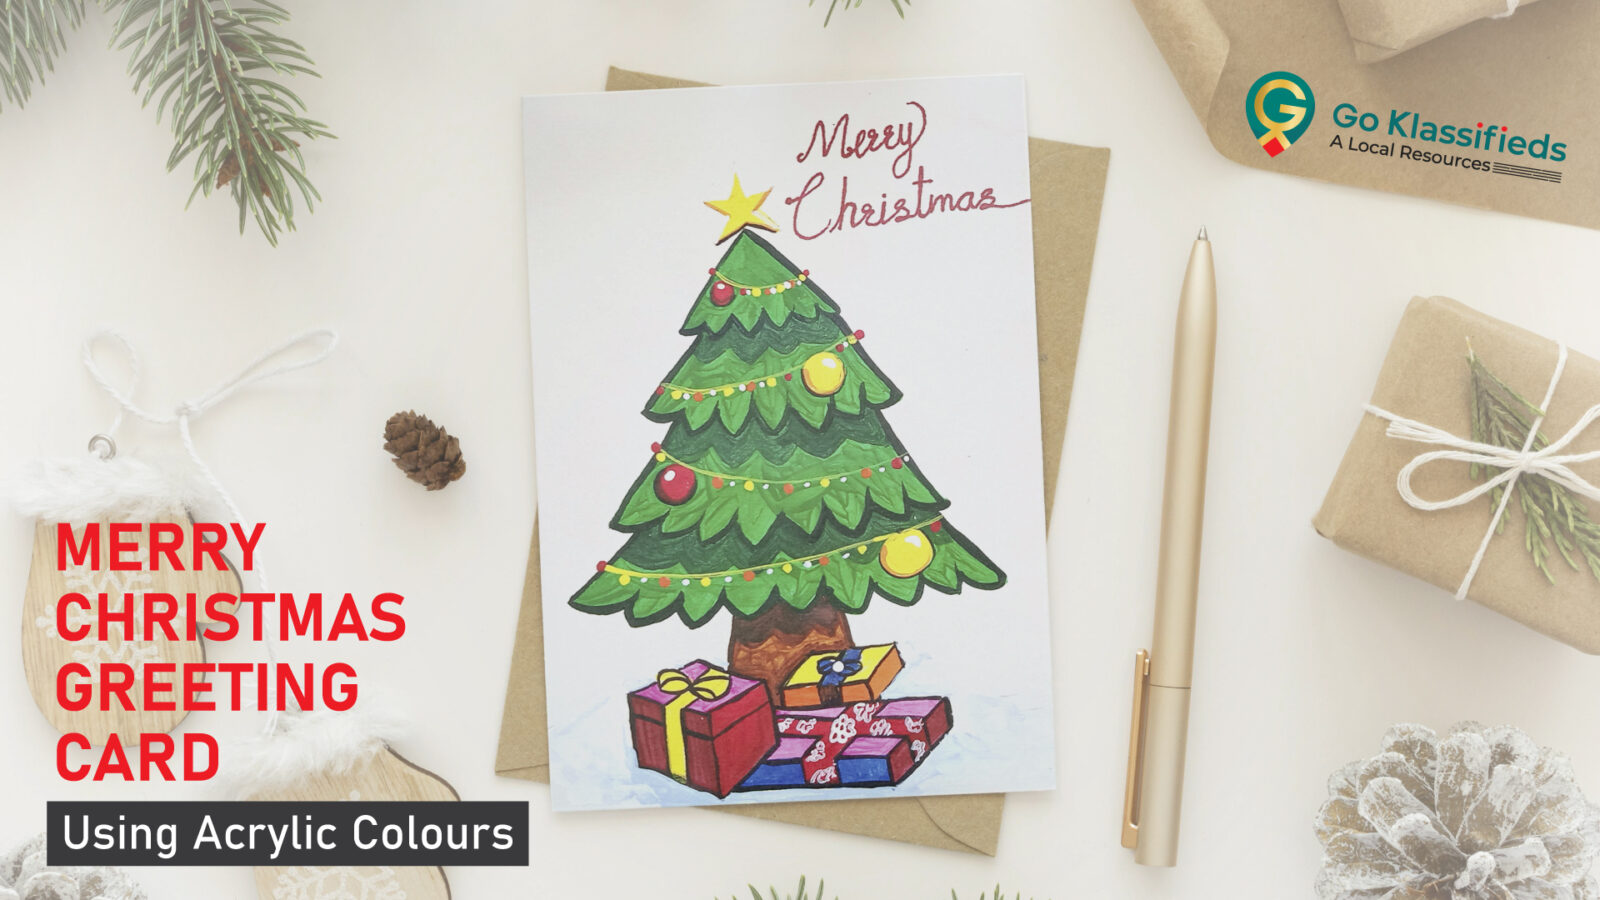 Merry Christmas Greeting Card Drawing